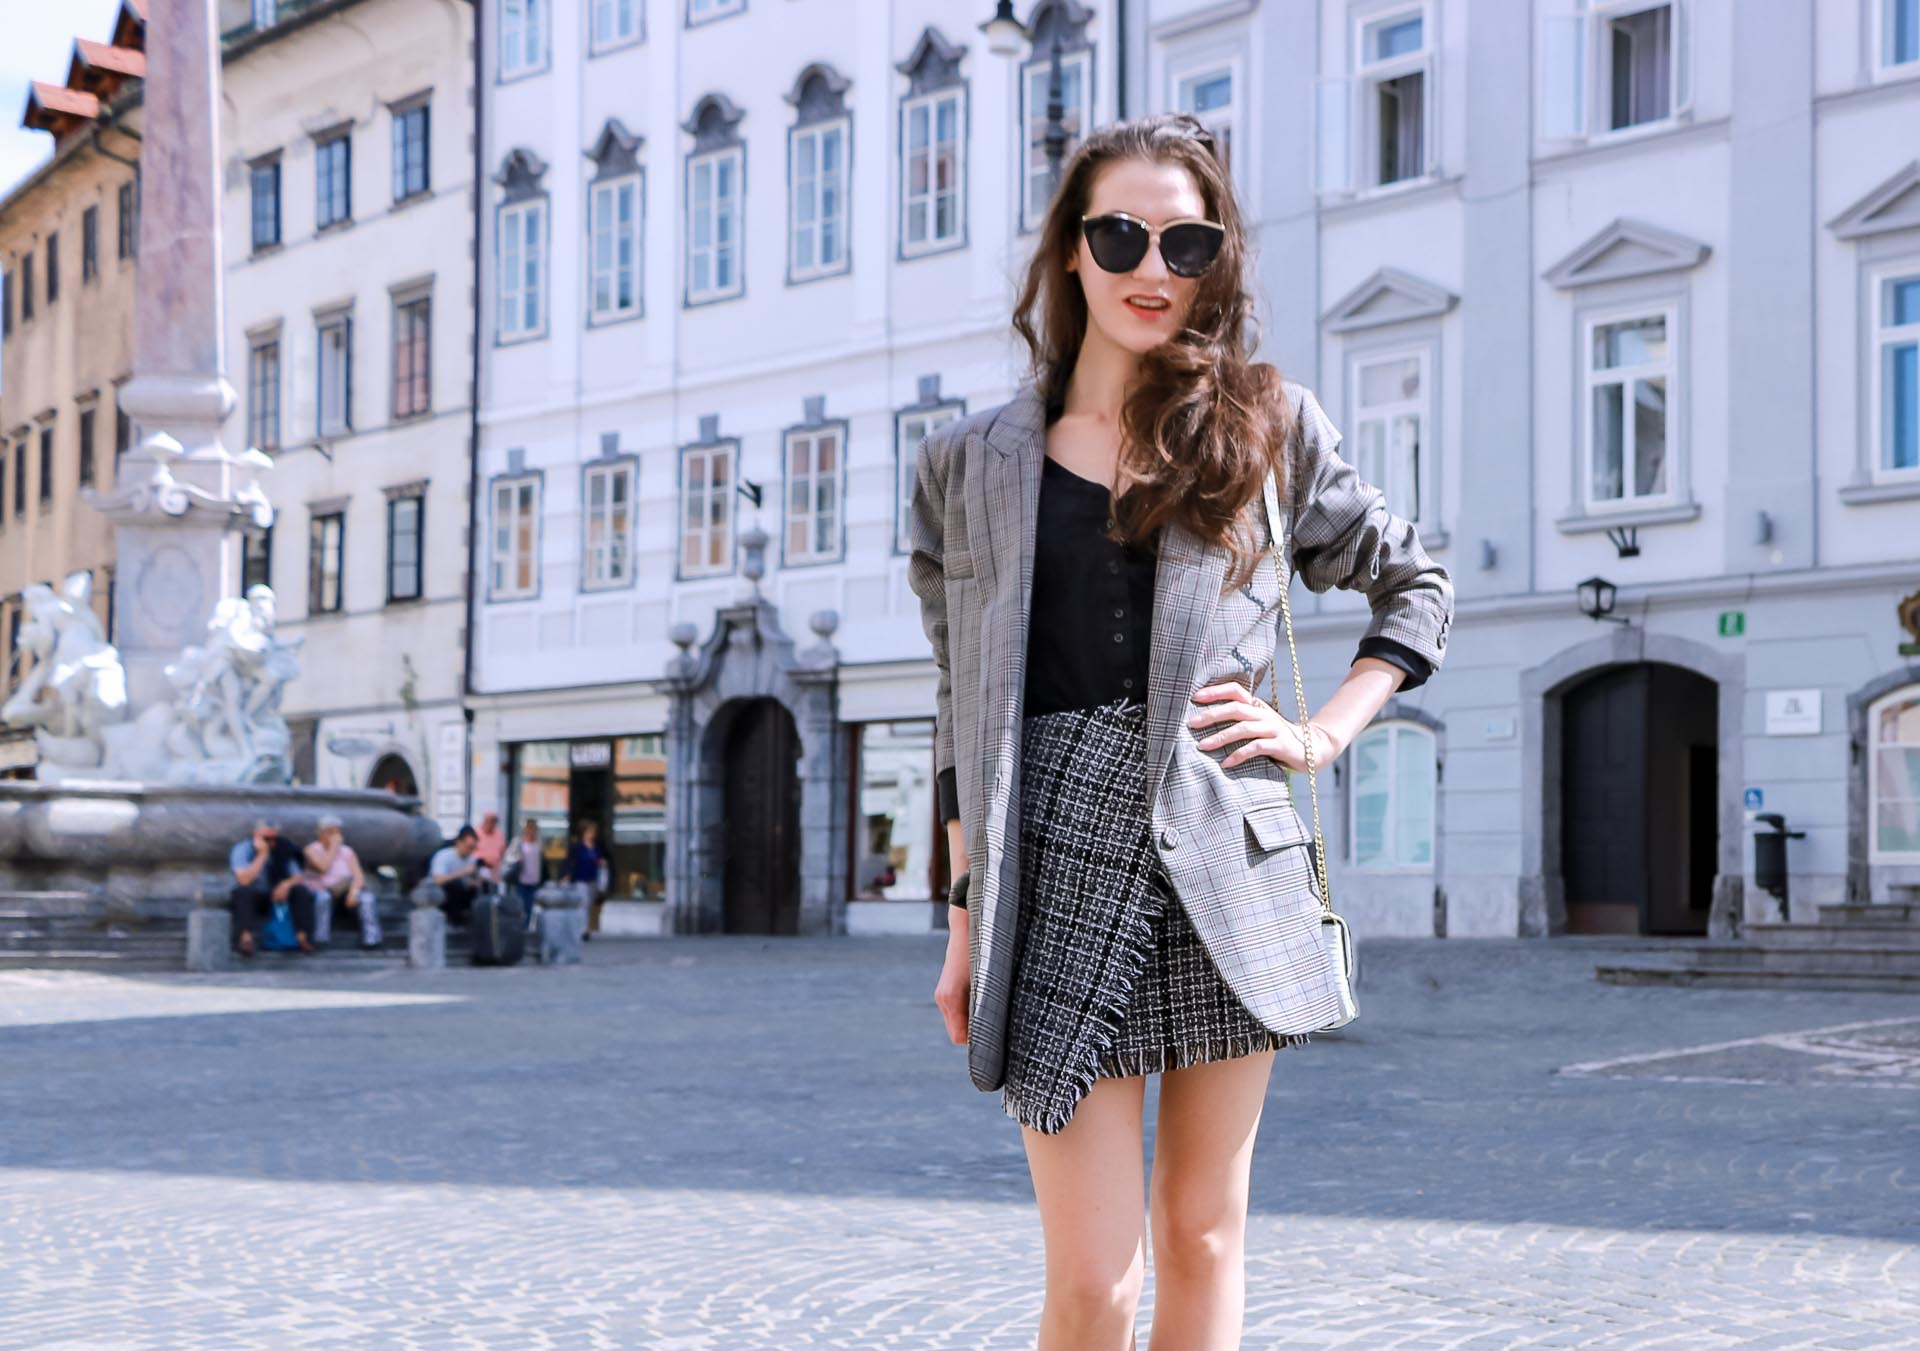 Fashion Blogger Veronika Lipar of Brunette from Wall Street dressed in Erika Cavallini oversized boyfriend plaid blazer with short tweed black and white mini skirt from streets, and white chain strap shoulder bag while on the street in Ljubljana